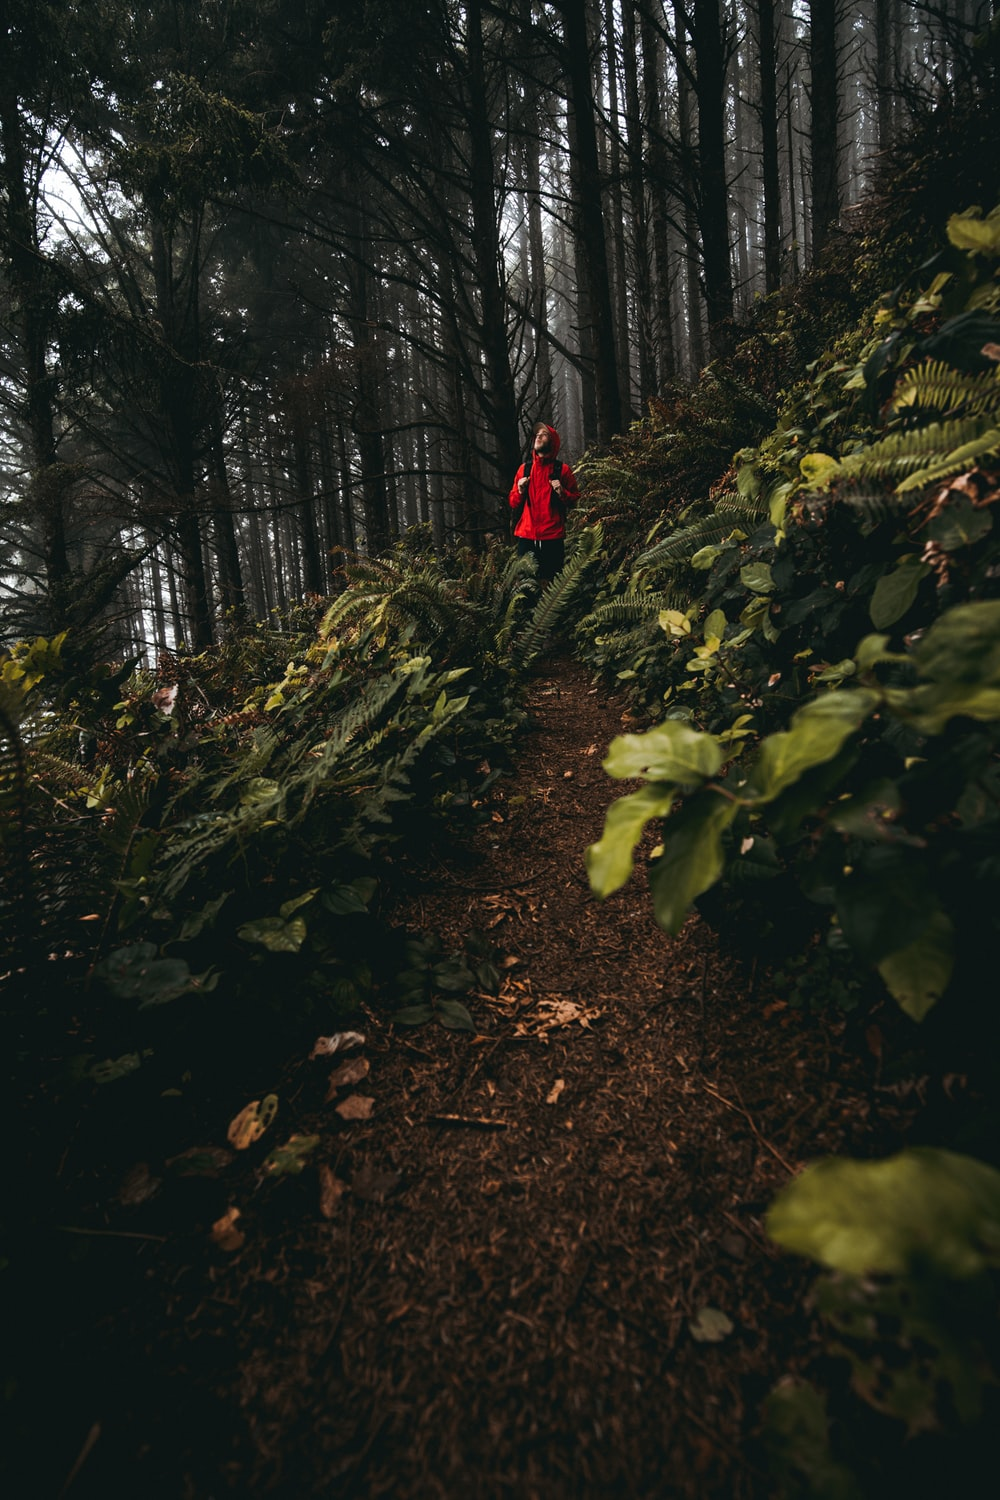 person in red jacket walking on pathway in the woods during daytime